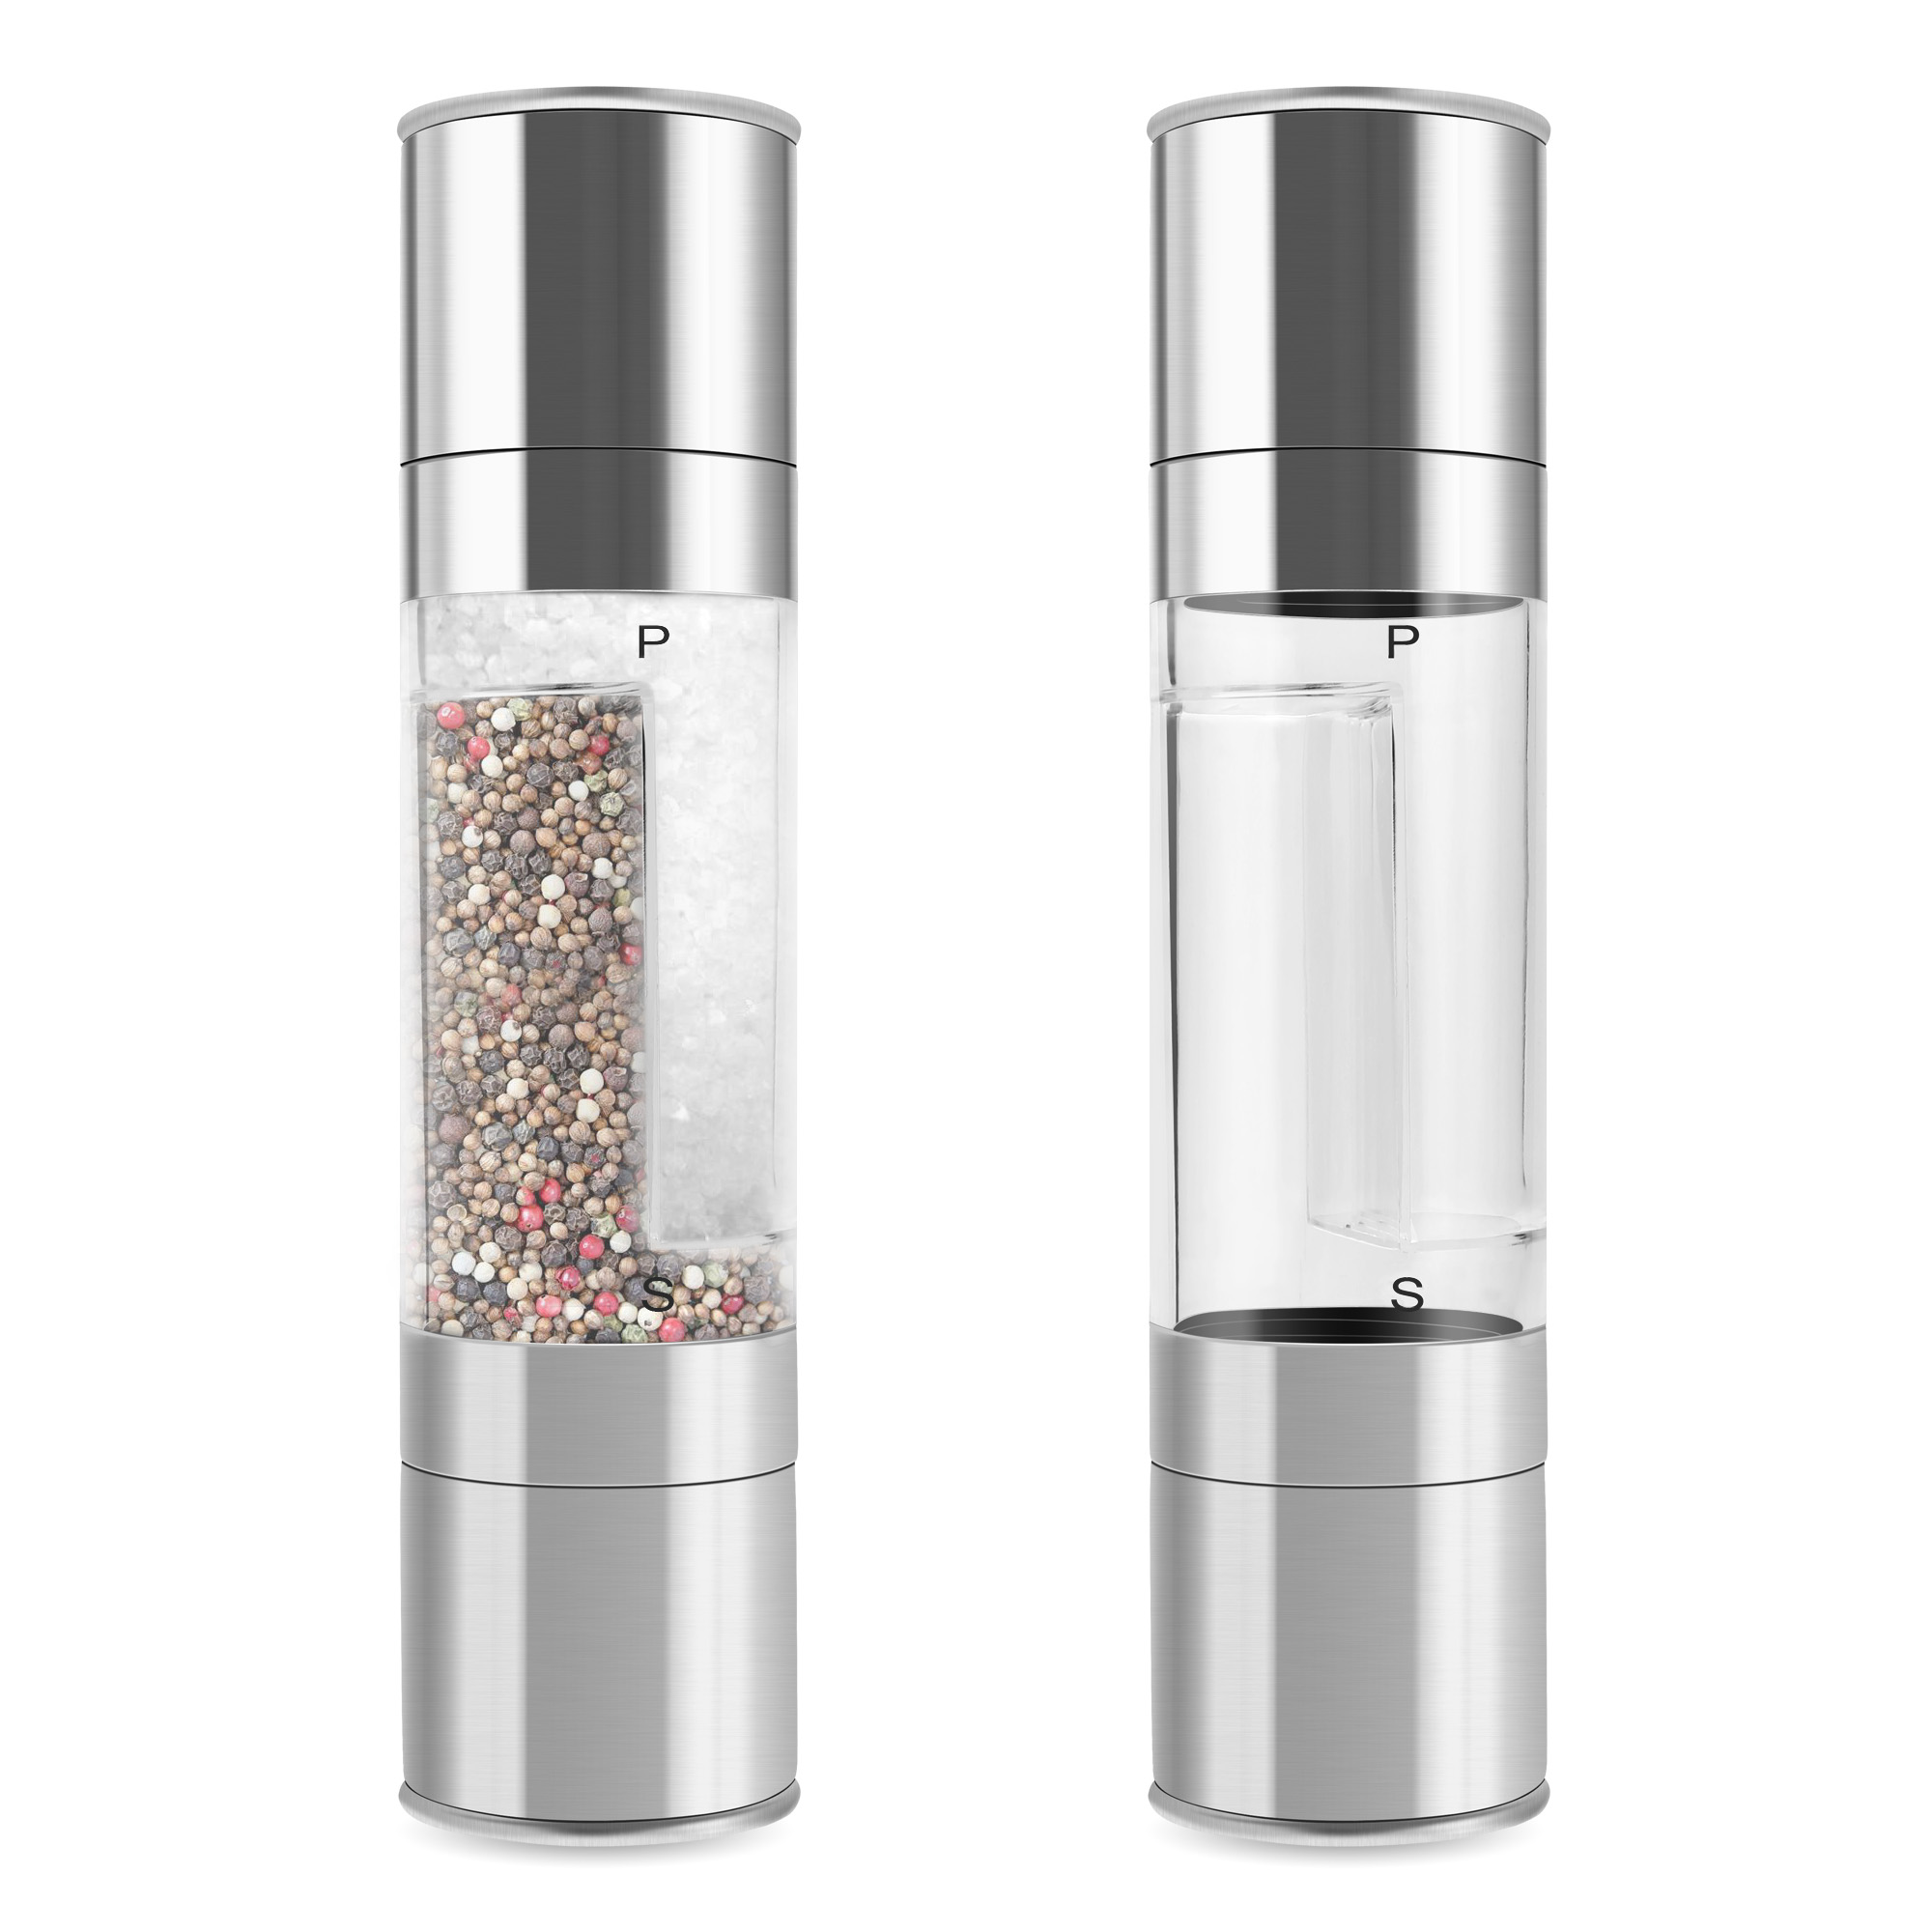 Cooking Tools 2 IN 1 Spice Salt & Pepper Mill Premium Salt Shaker Spice Herb Pepper Grinder Mill Wholesales(China (Mainland))